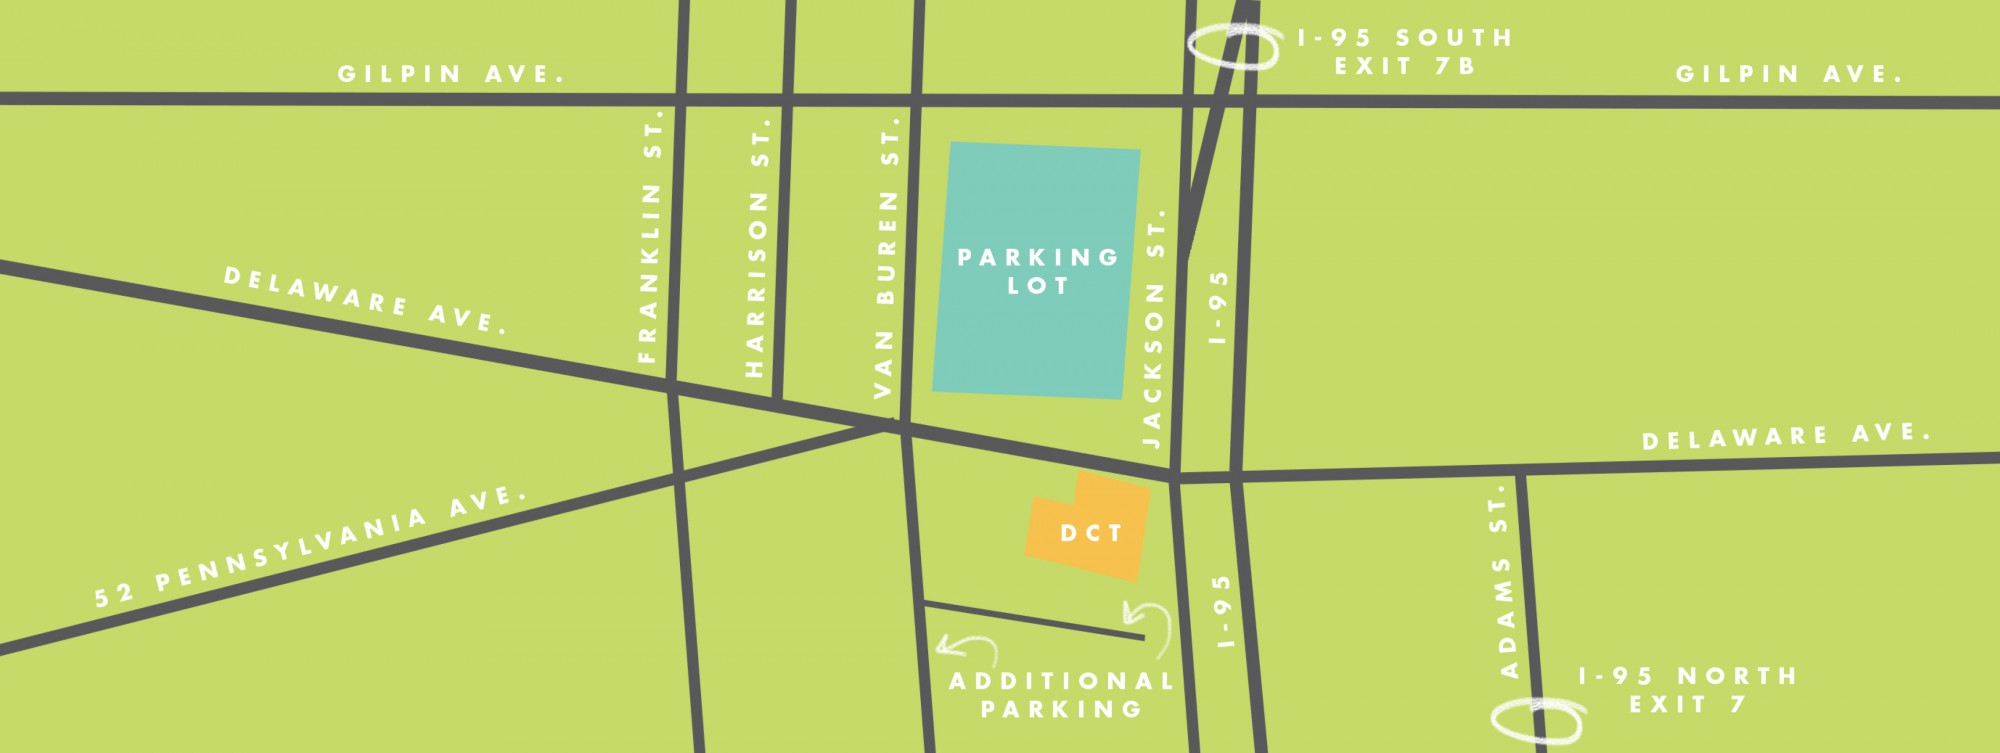 Parking Lot map for Delaware Children's Theatre